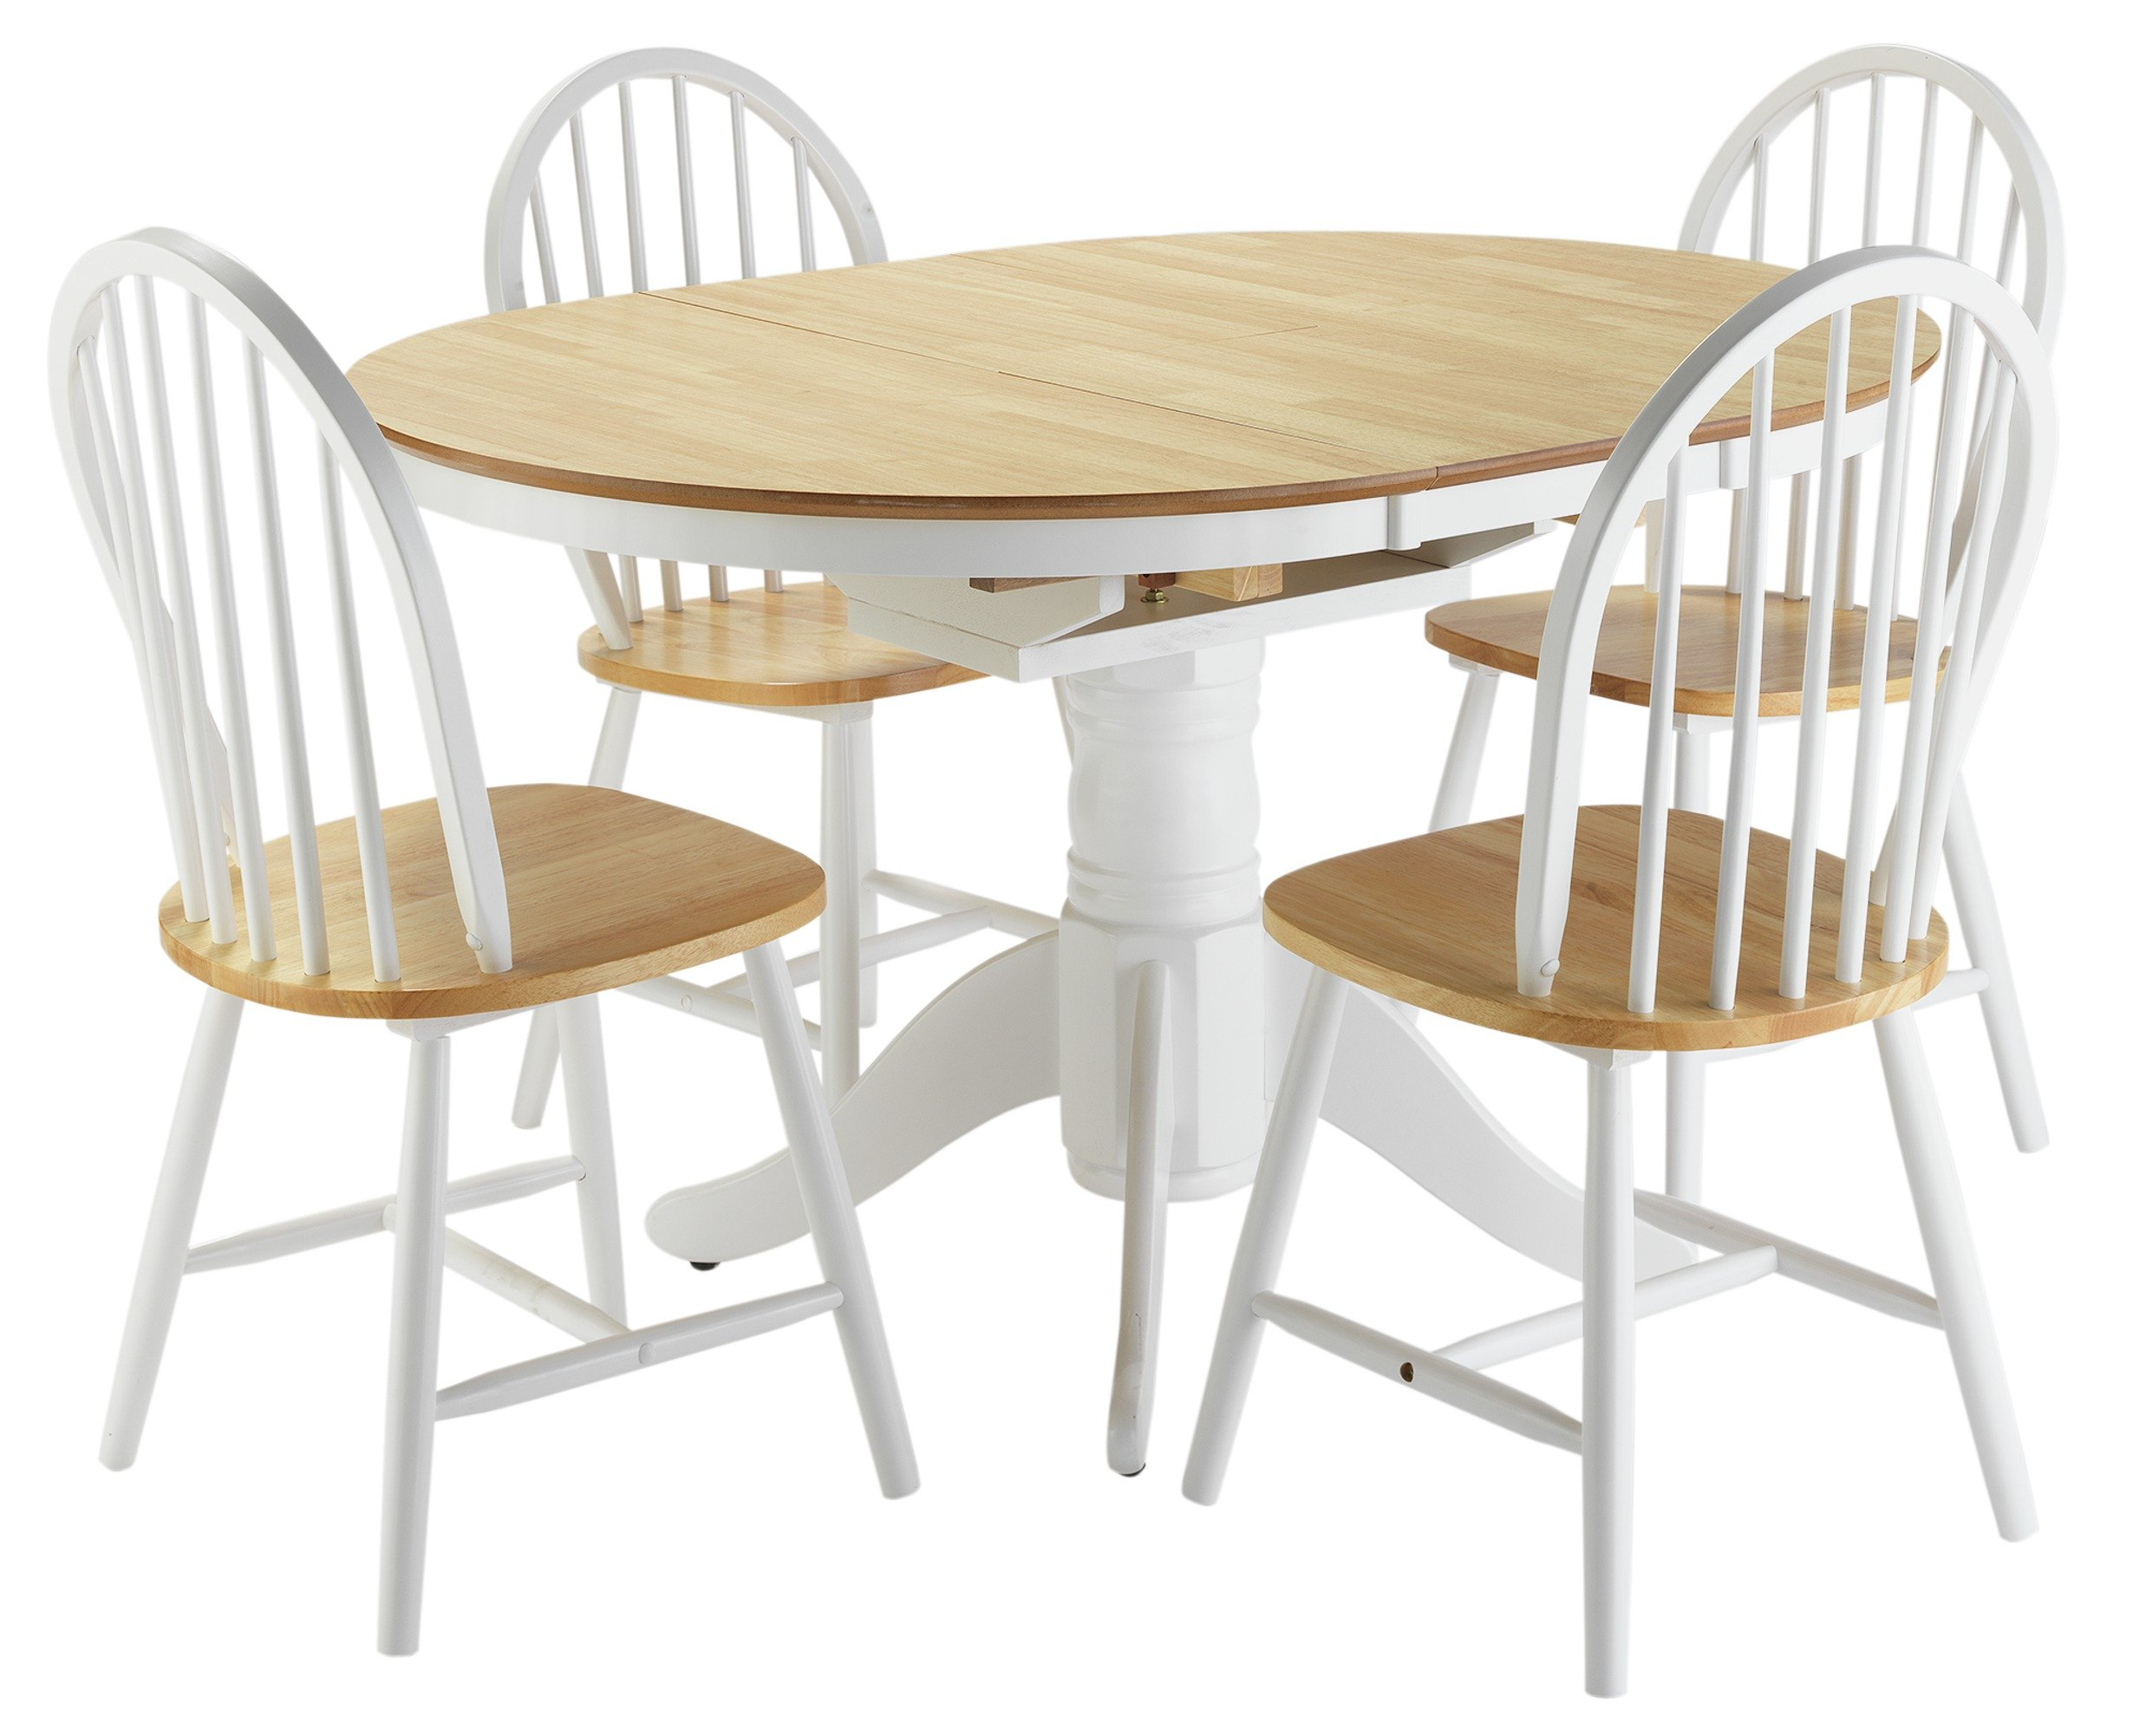 Buy Collection Kentucky Ext Dining Table and 4 Chairs Two  : 6035684RZ001AWebampw570amph513 from www.argos.co.uk size 570 x 513 jpeg 32kB